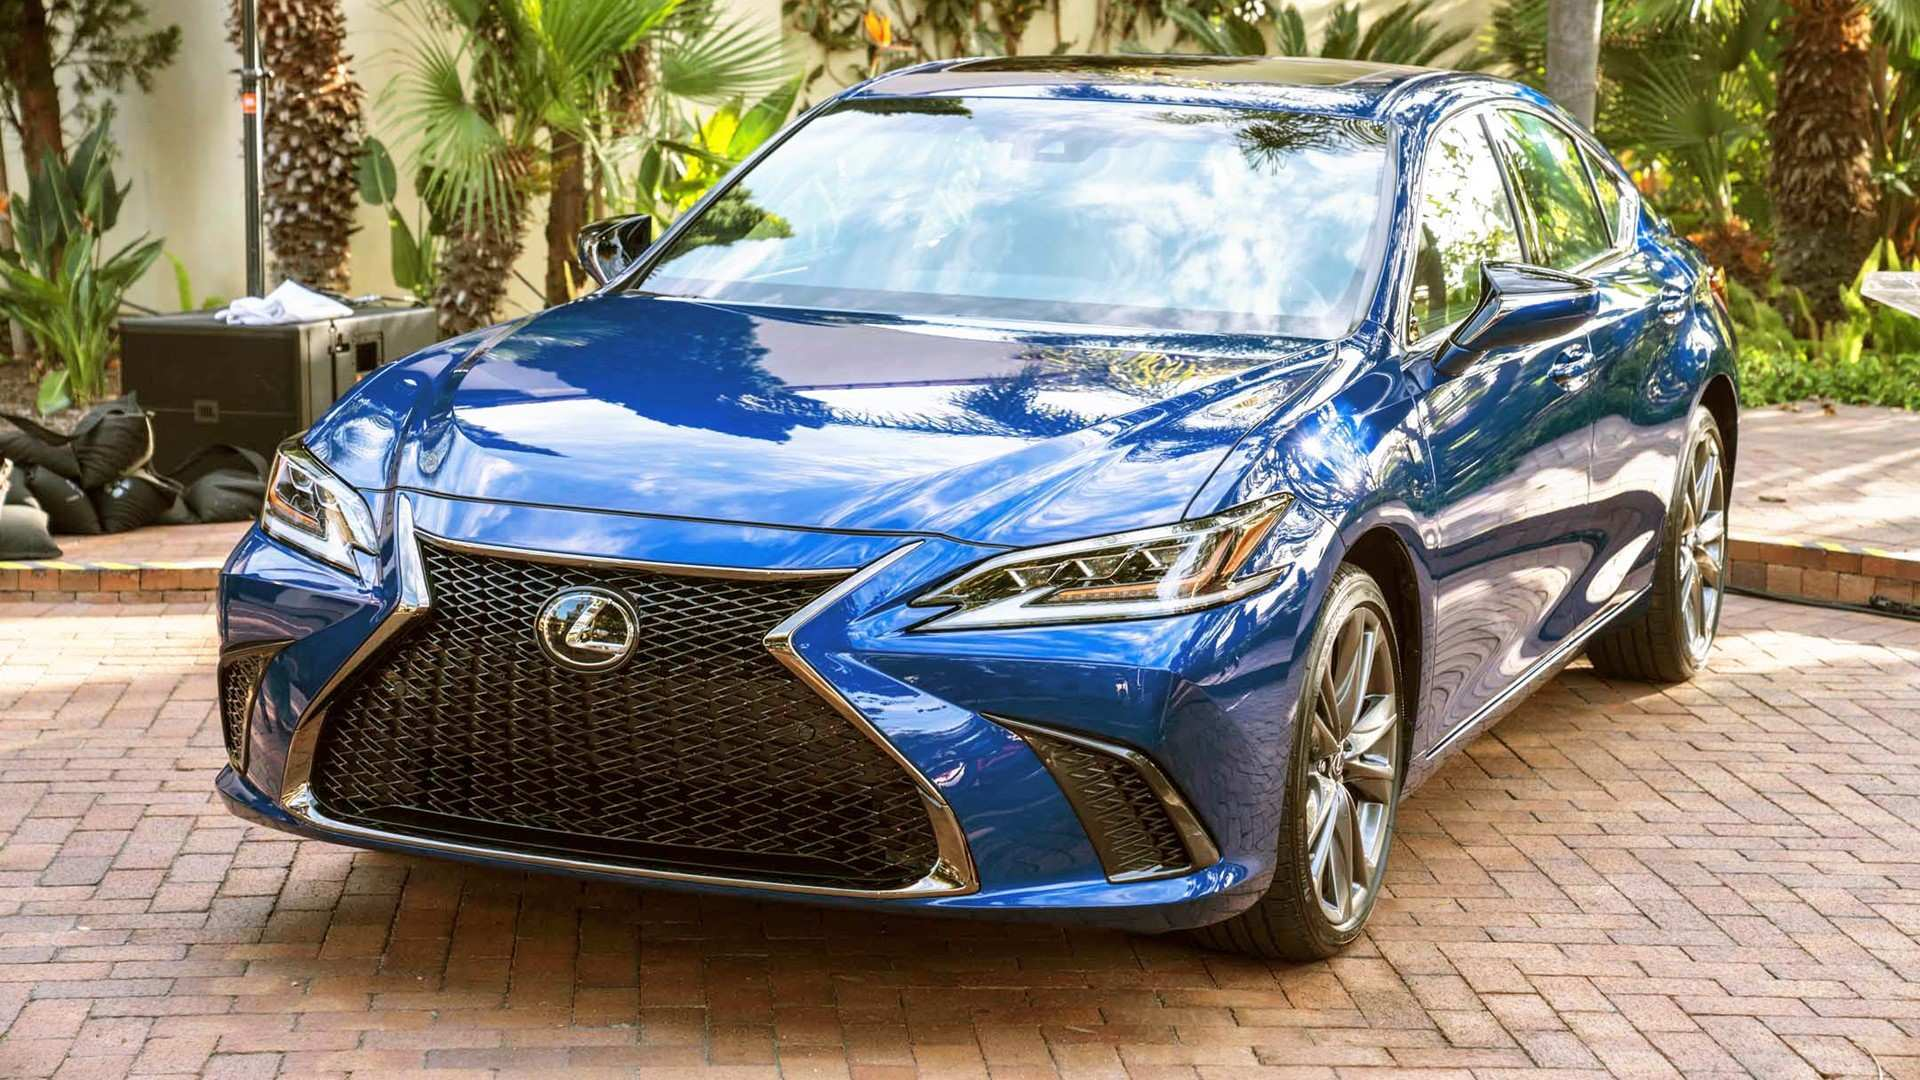 54 Great Lexus Es 2019 Debut Interior by Lexus Es 2019 Debut